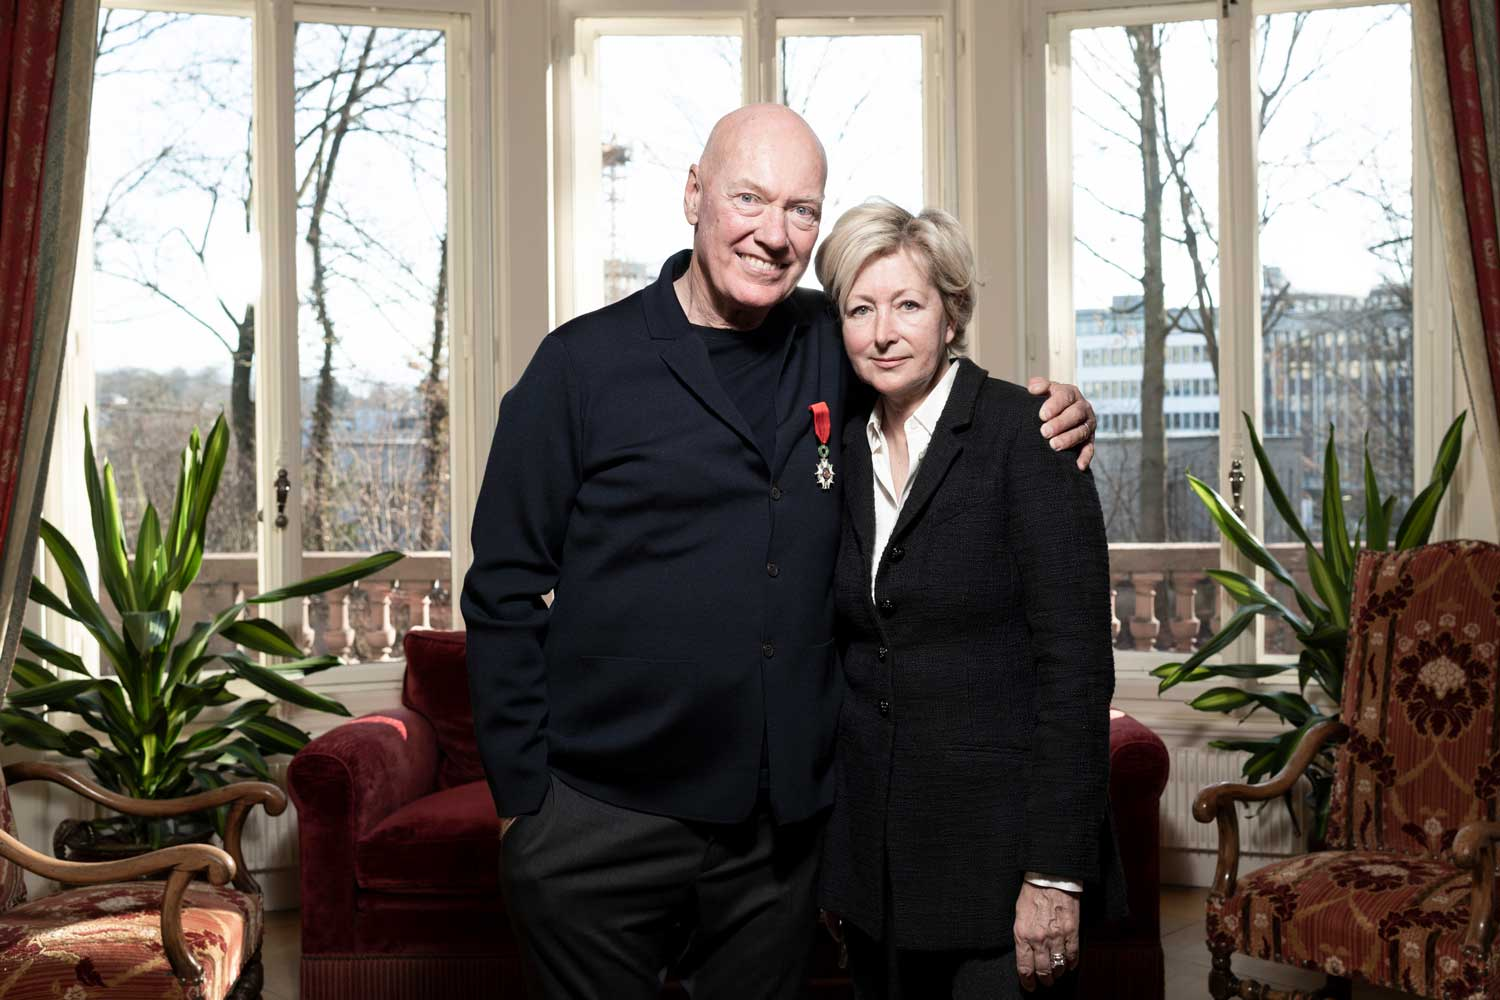 Jean-Claude Biver with wife, Sandra at the French Embassy in Bern. Bern, Switzerland, January 15, 2020 © Fred Merz | Lundi13